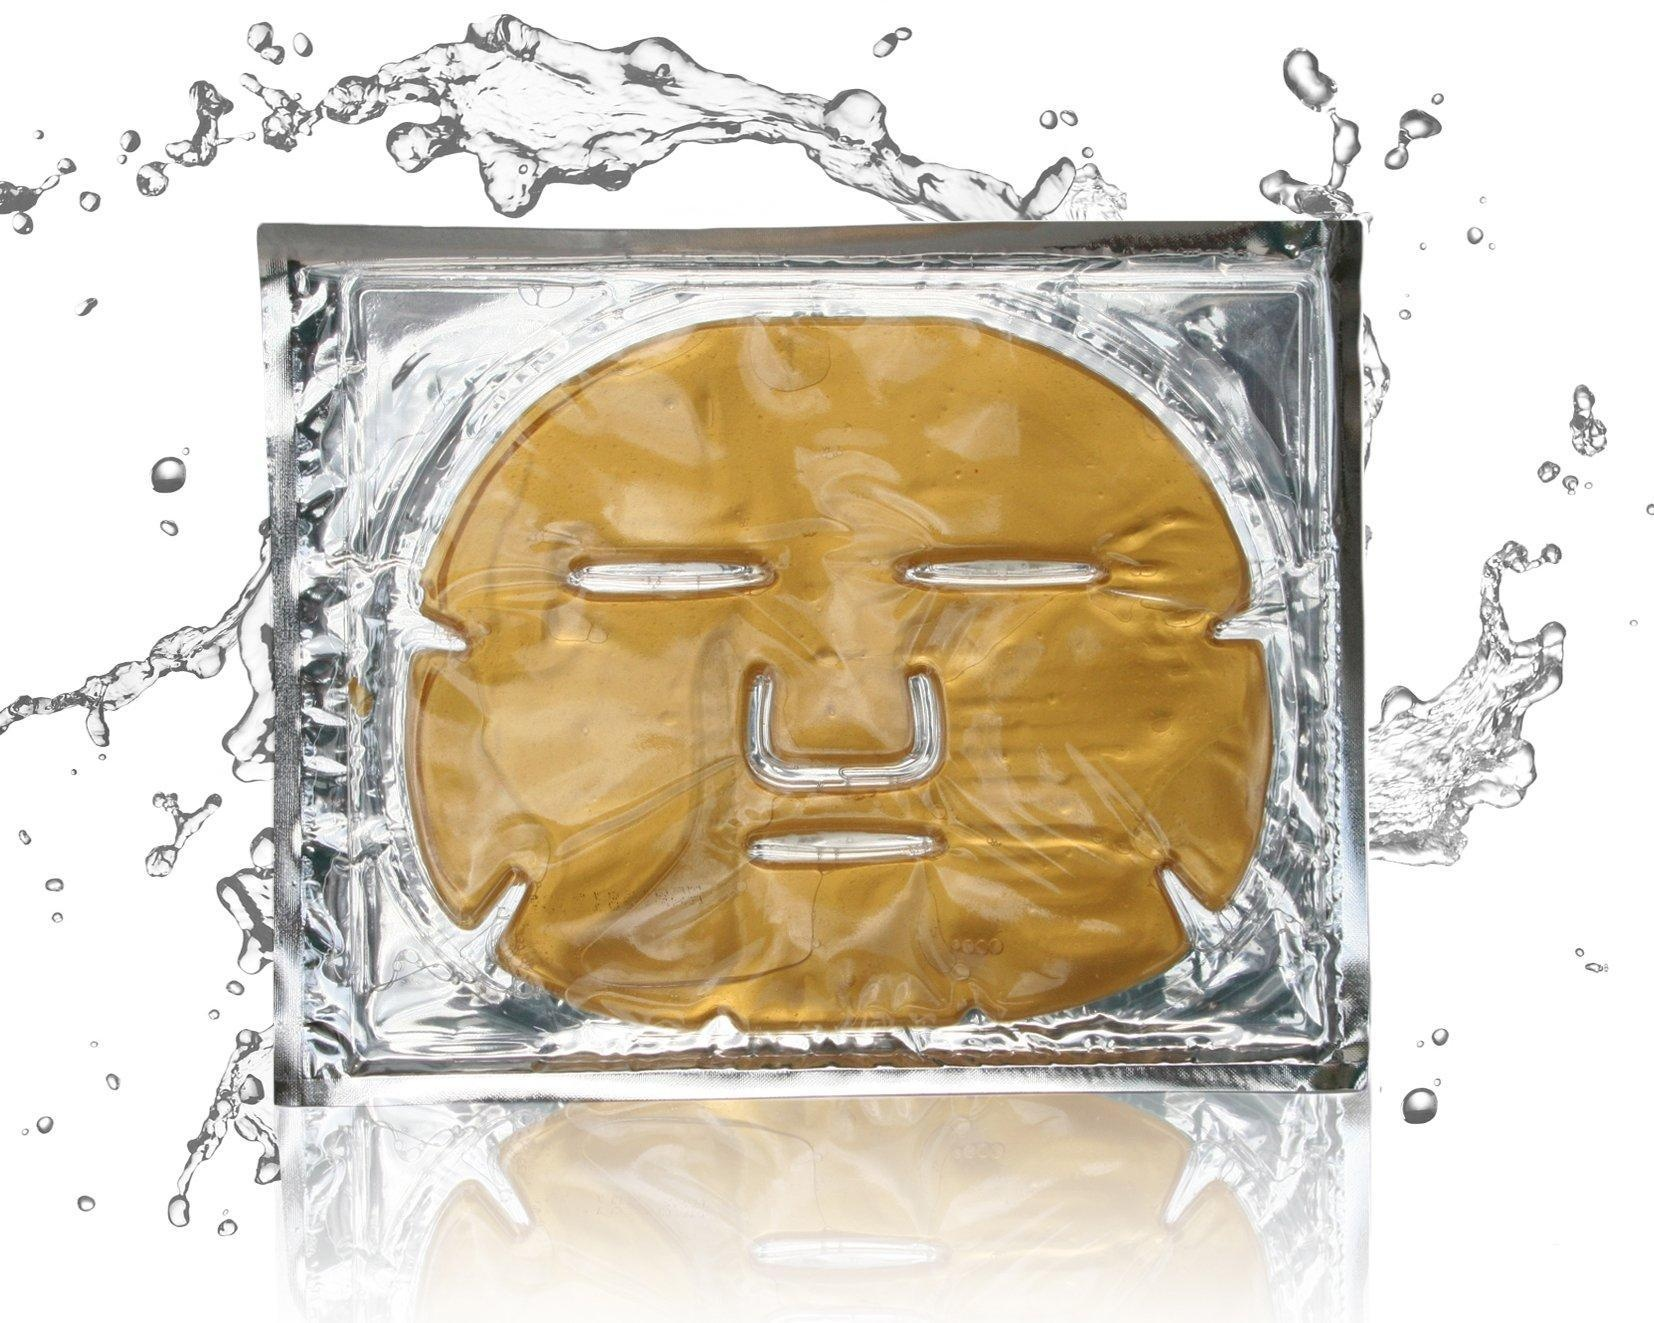 24 Karat Gold Face Facial Face Mask, Look Younger and Rejuvenated In Minutes, Intense Hydration, Collagen, and Peptides Energize Skin While Reducing Fine Lines and Wrinkles